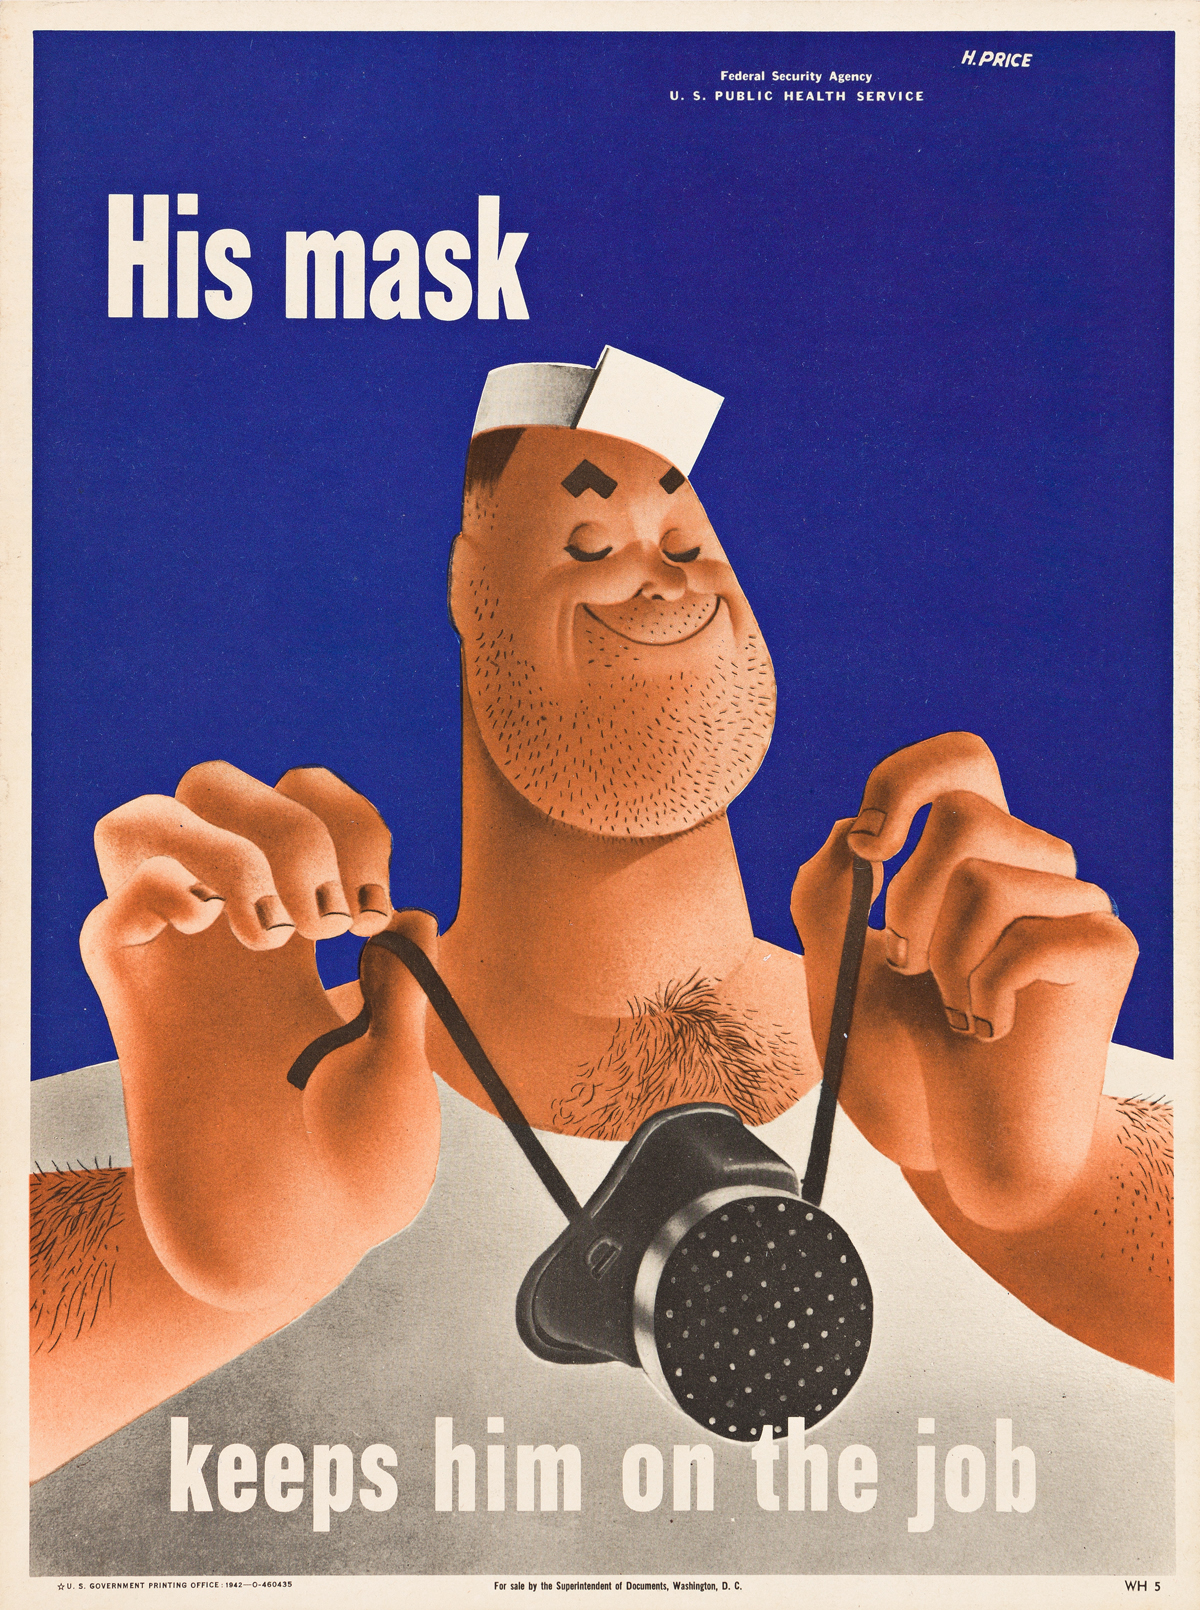 FERREE & H. PRICE (DATES UNKNOWN).  [UNITED HEALTH SERVICE & VD / WORLD WAR II.] Group of 5 small format posters. Circa 1942. Sizes var